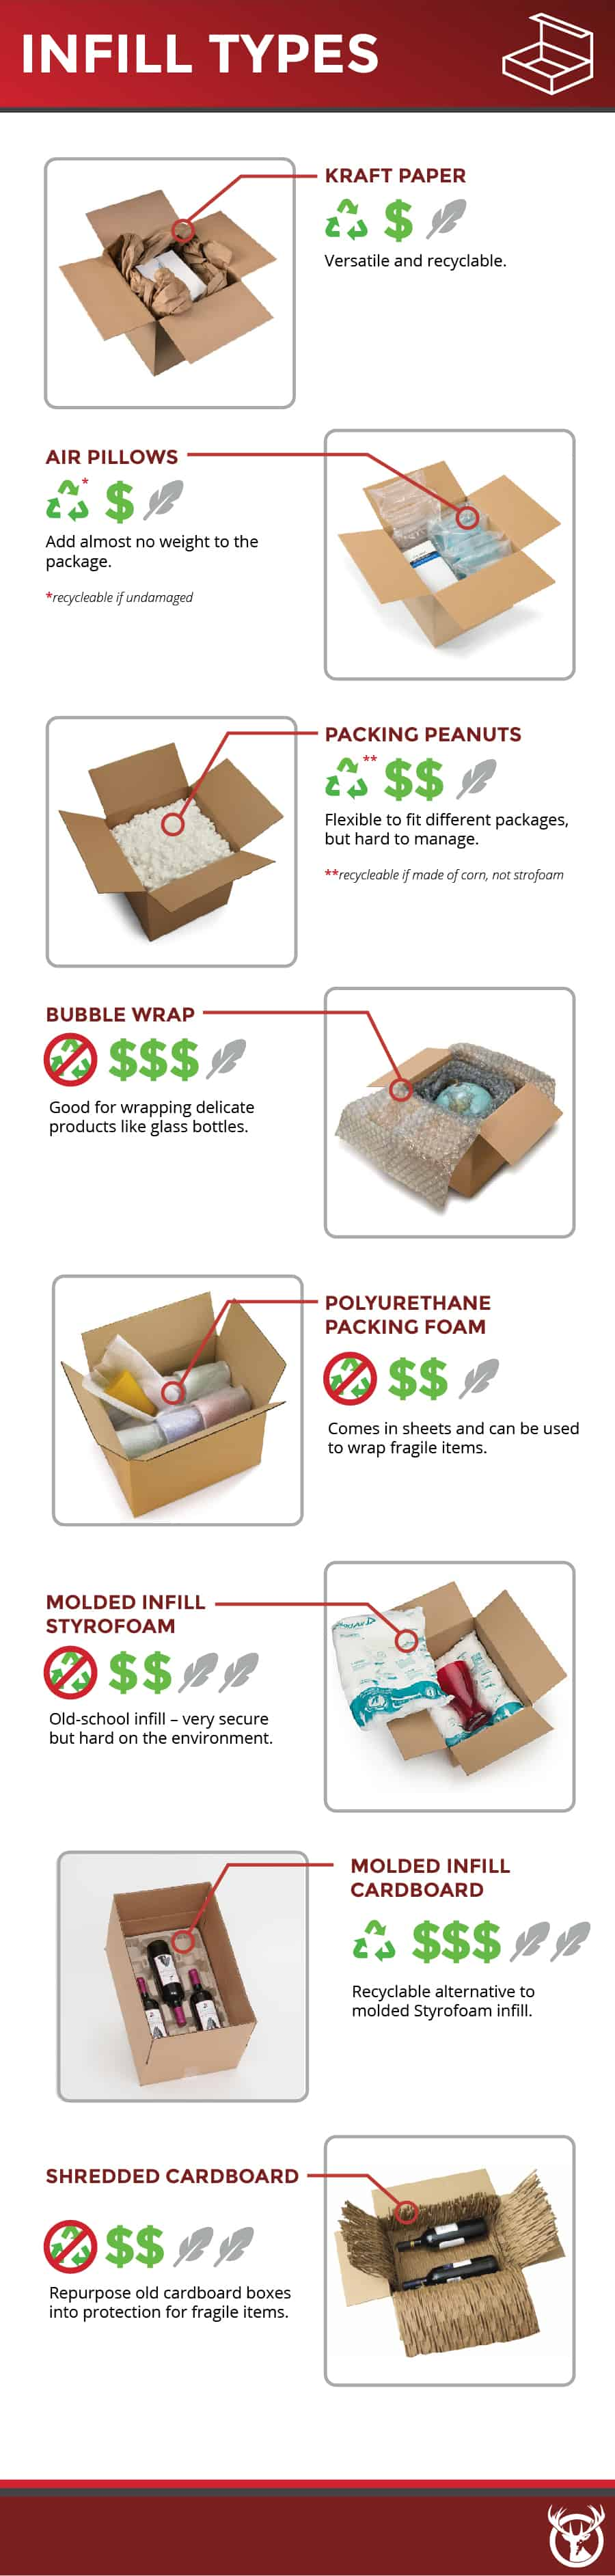 eCommerce Packaging and infill guide